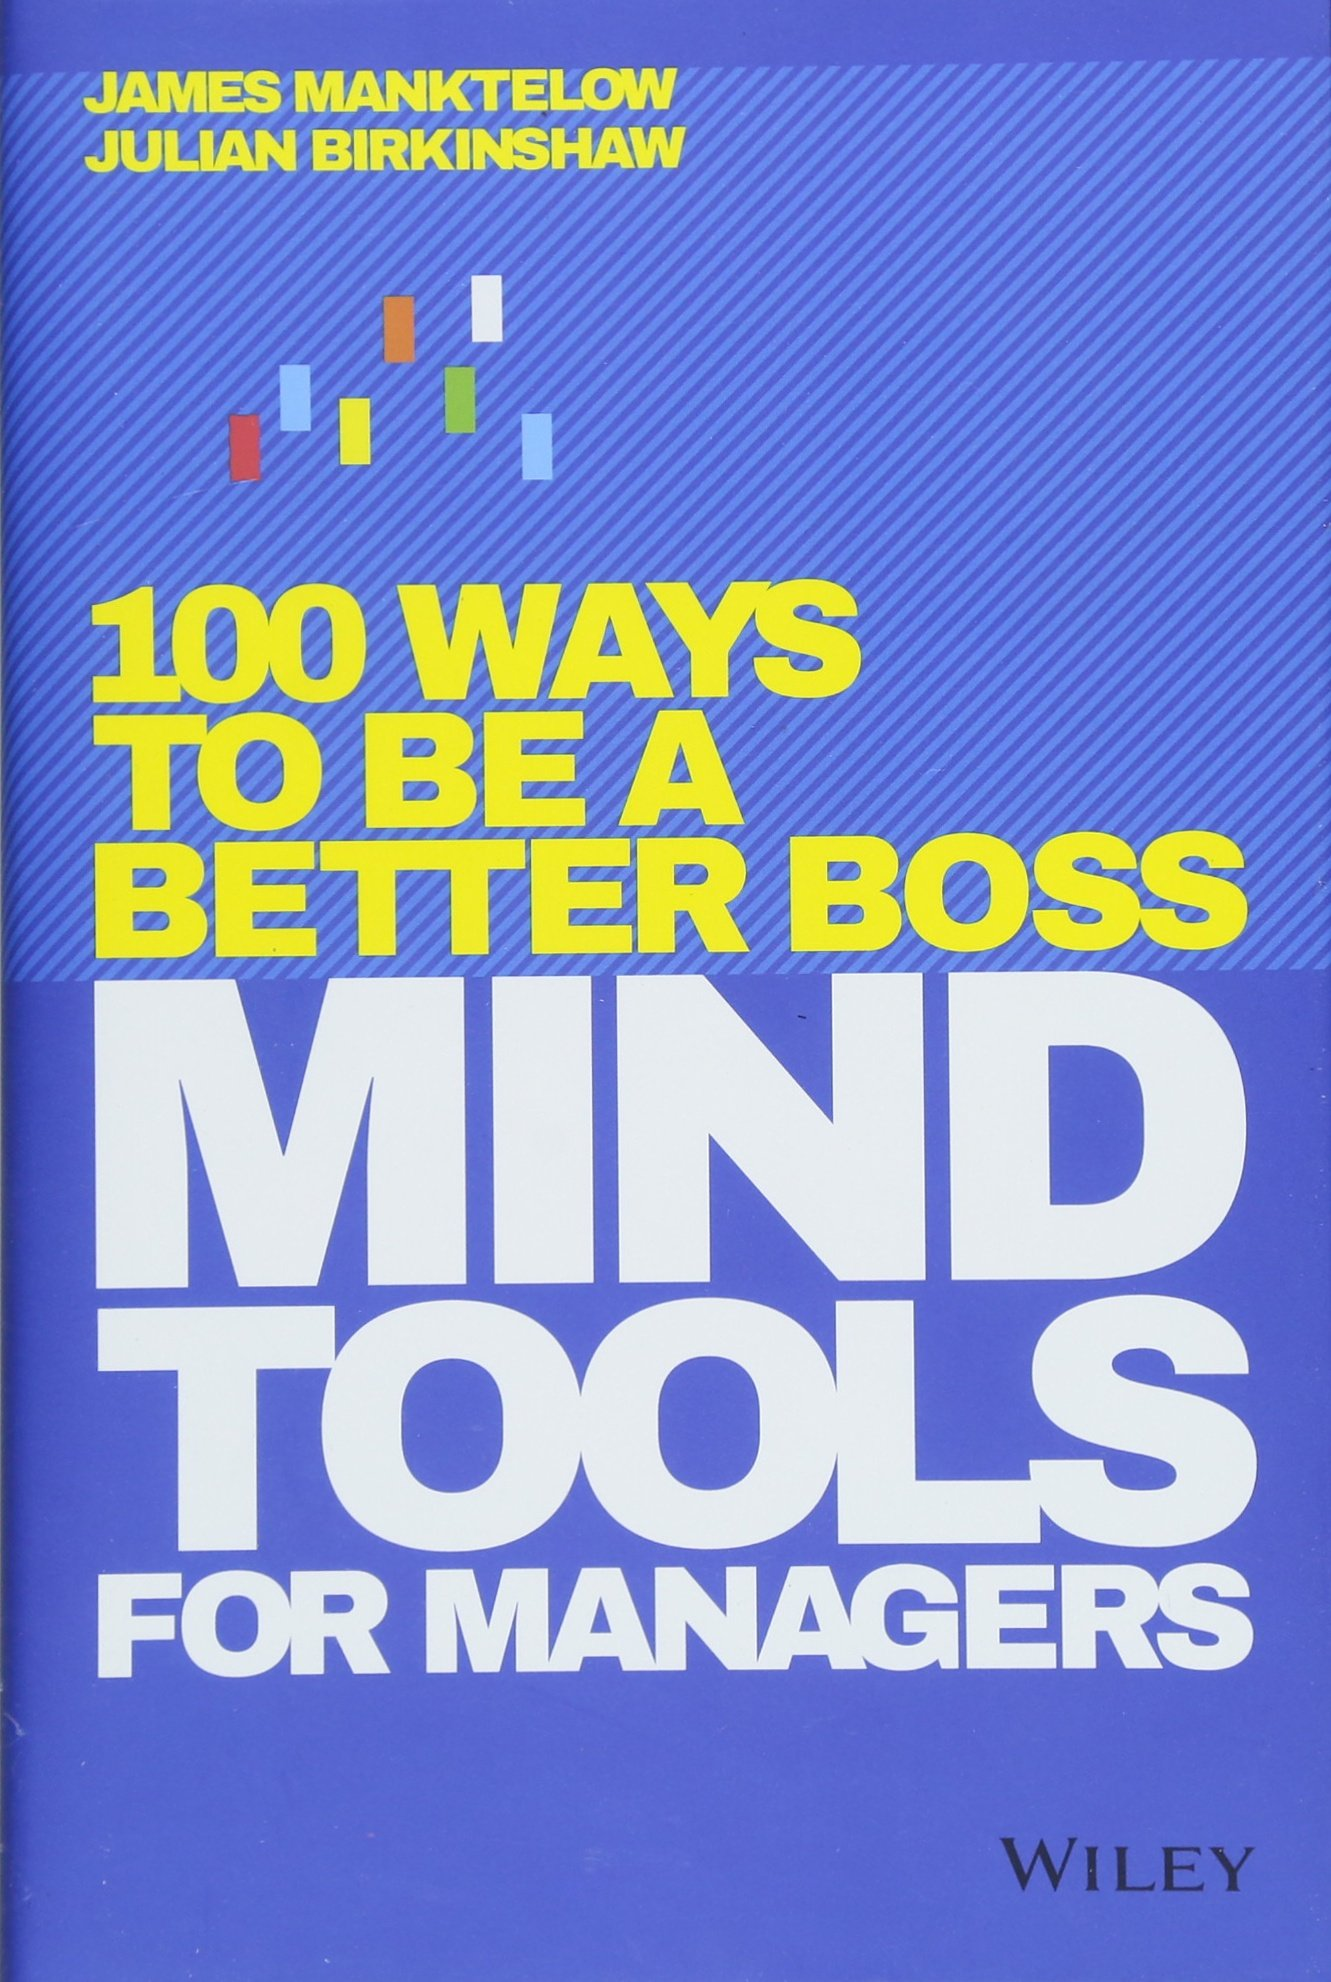 Mind Tools for Managers: 100 Ways to be a Better Boss: James Manktelow,  Julian Birkinshaw: 9781119374473: Amazon.com: Books